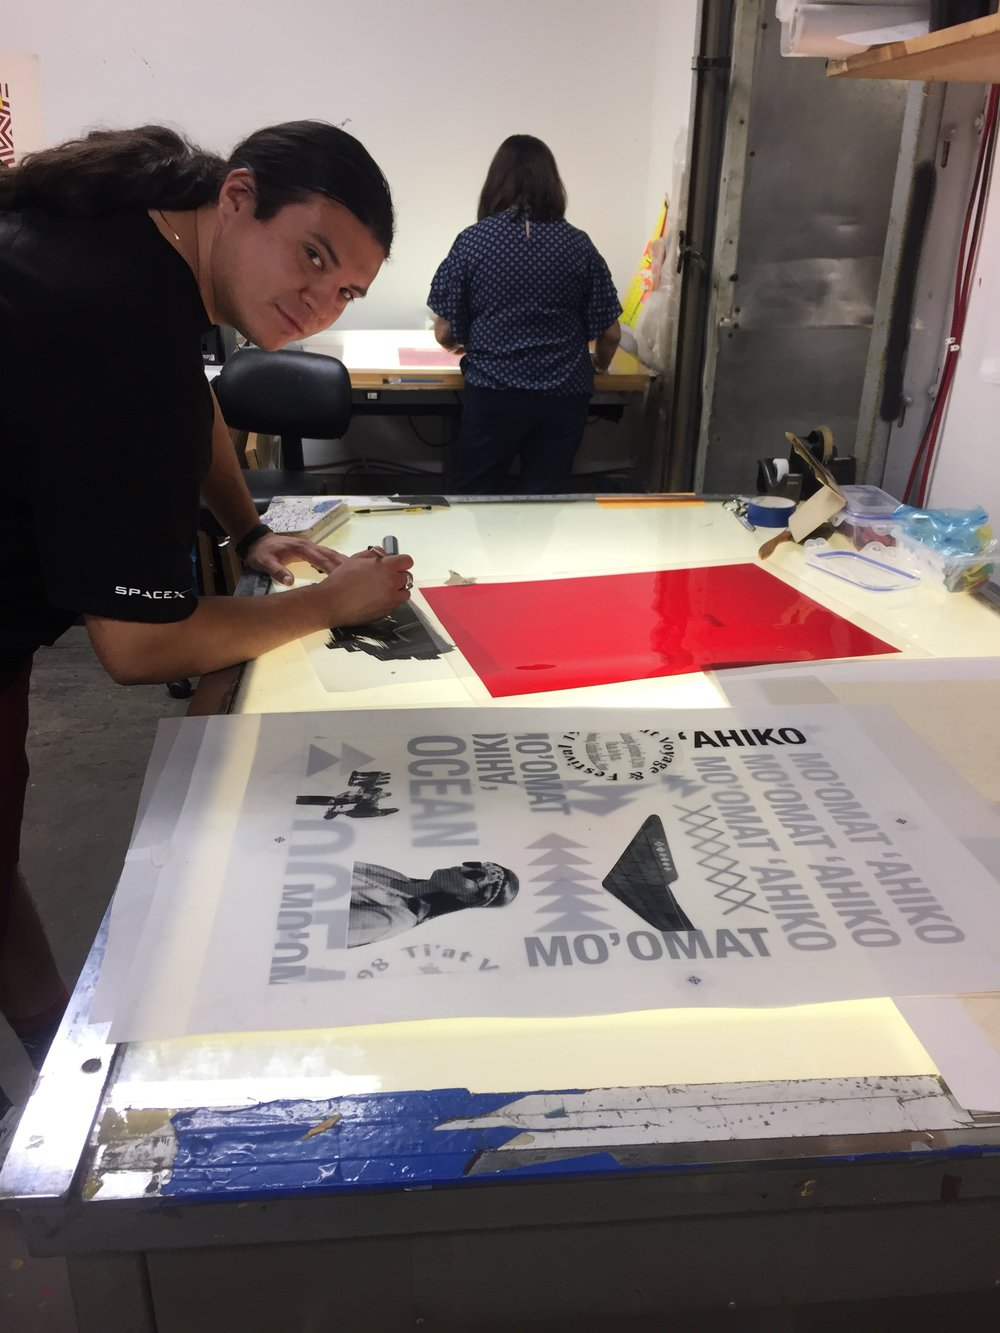 Garza in the process of making  Breath of The Ocean  for the 45th Annual Print Fair and Exhibition.